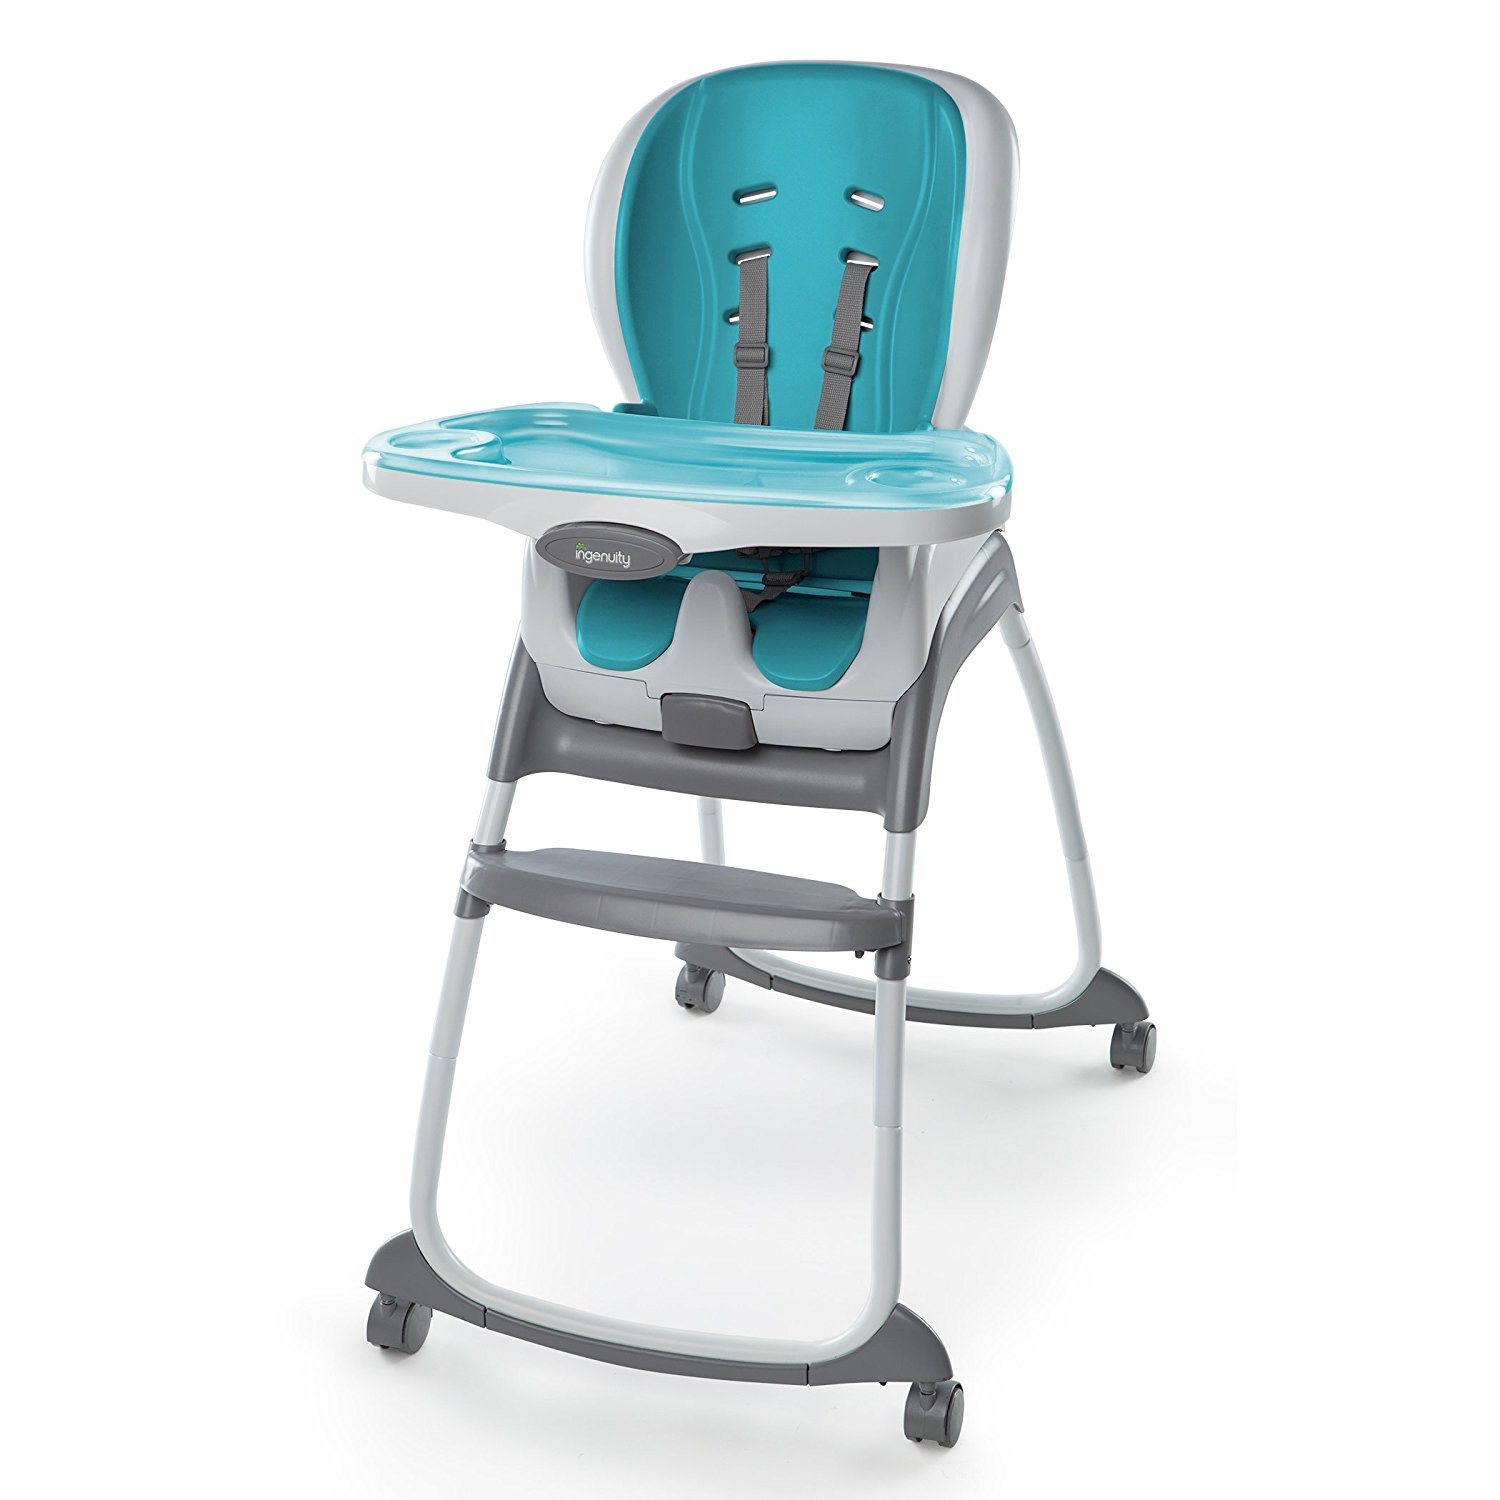 ingenuity ez clean chair, best high chair, easy clean high chair, best high chair for baby, best high chair for toddler